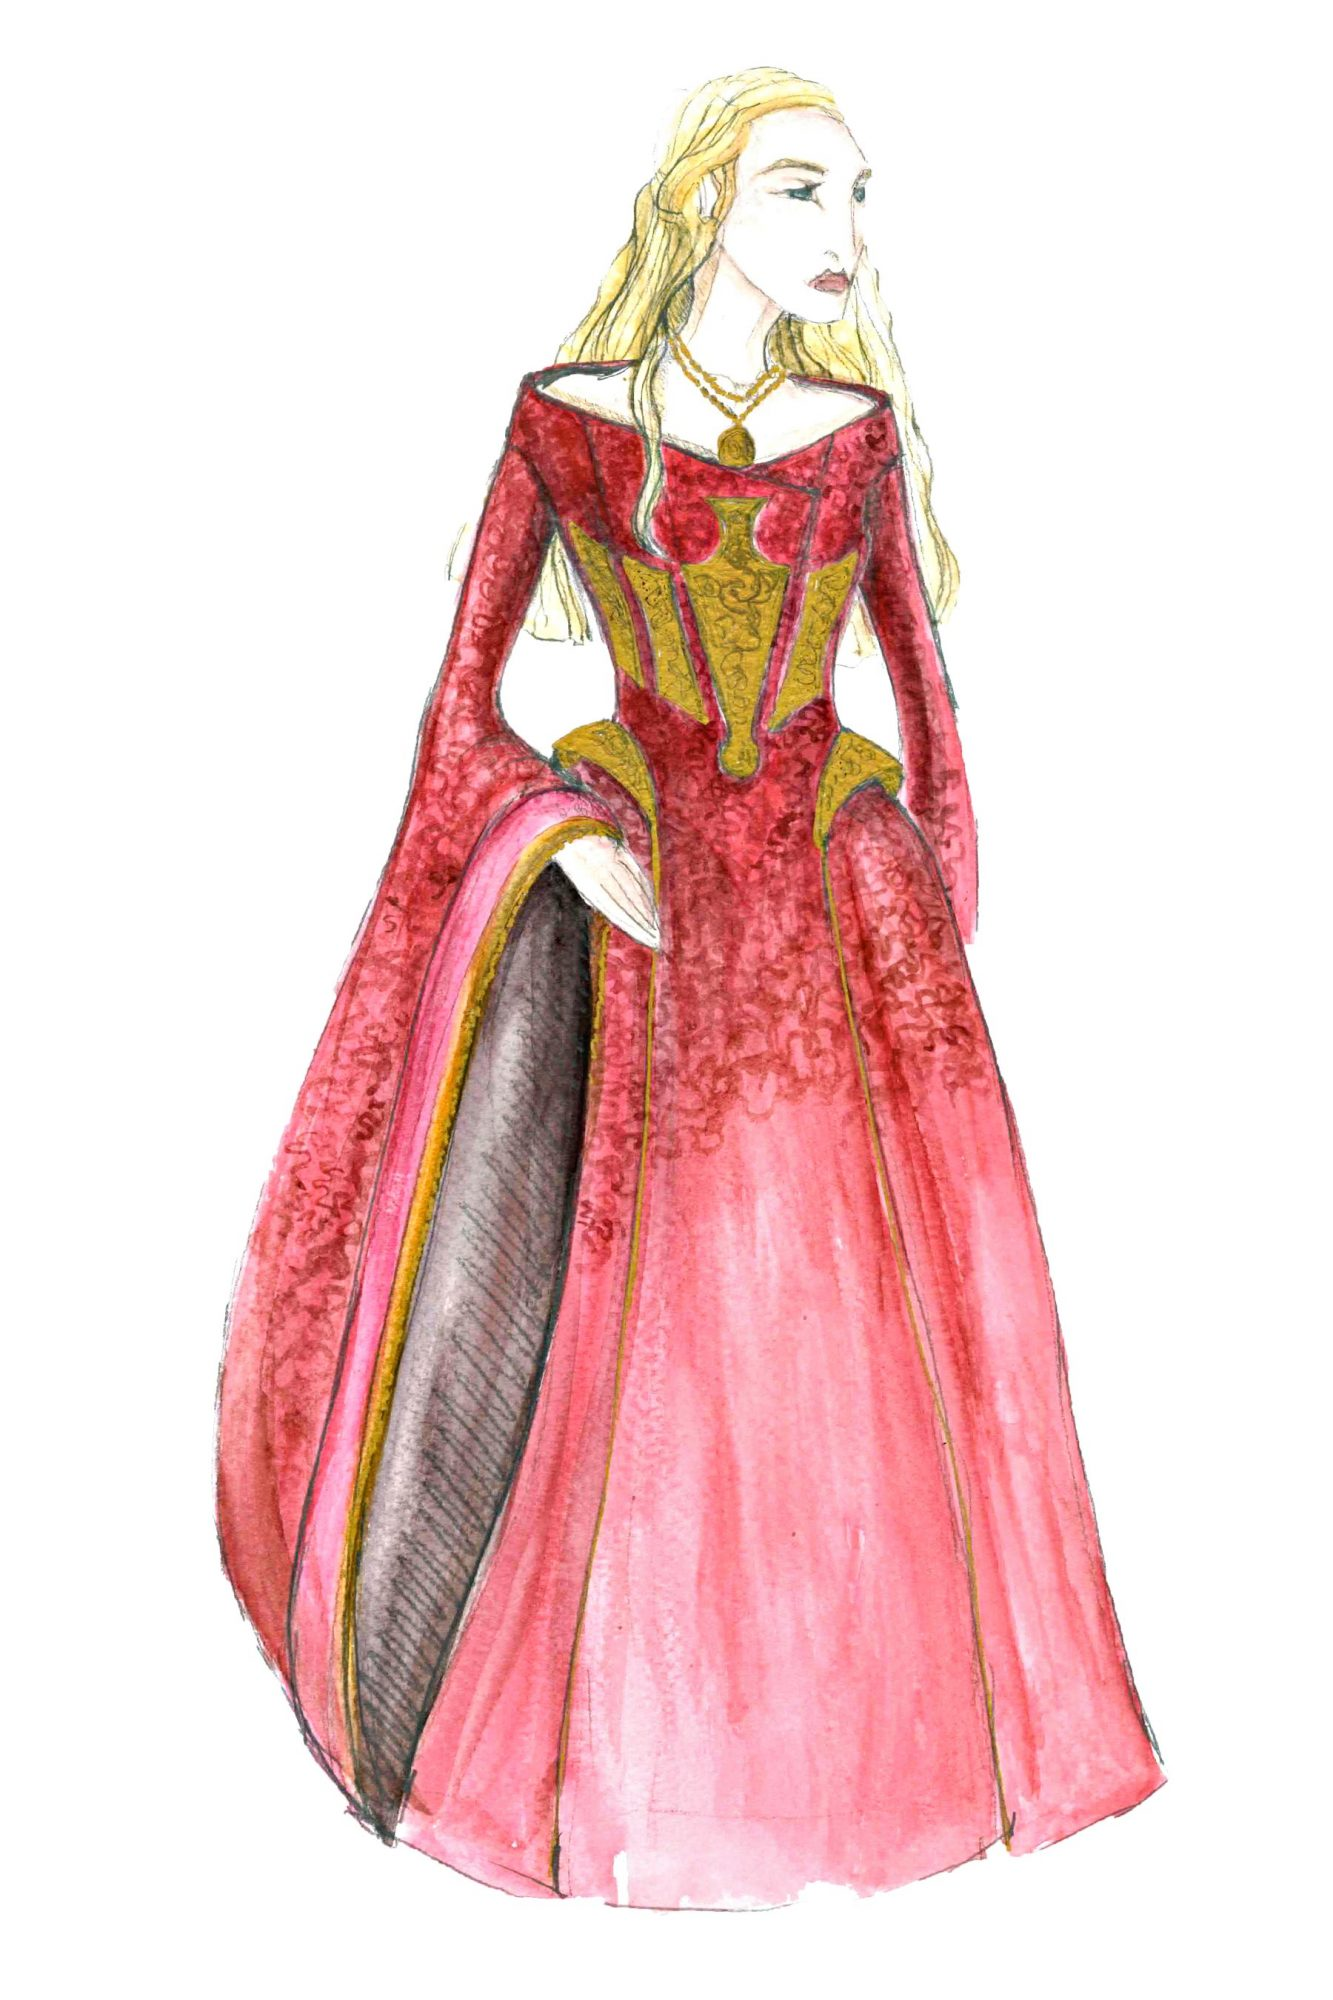 Game of ThronesCersei LannisterCostume Sketch